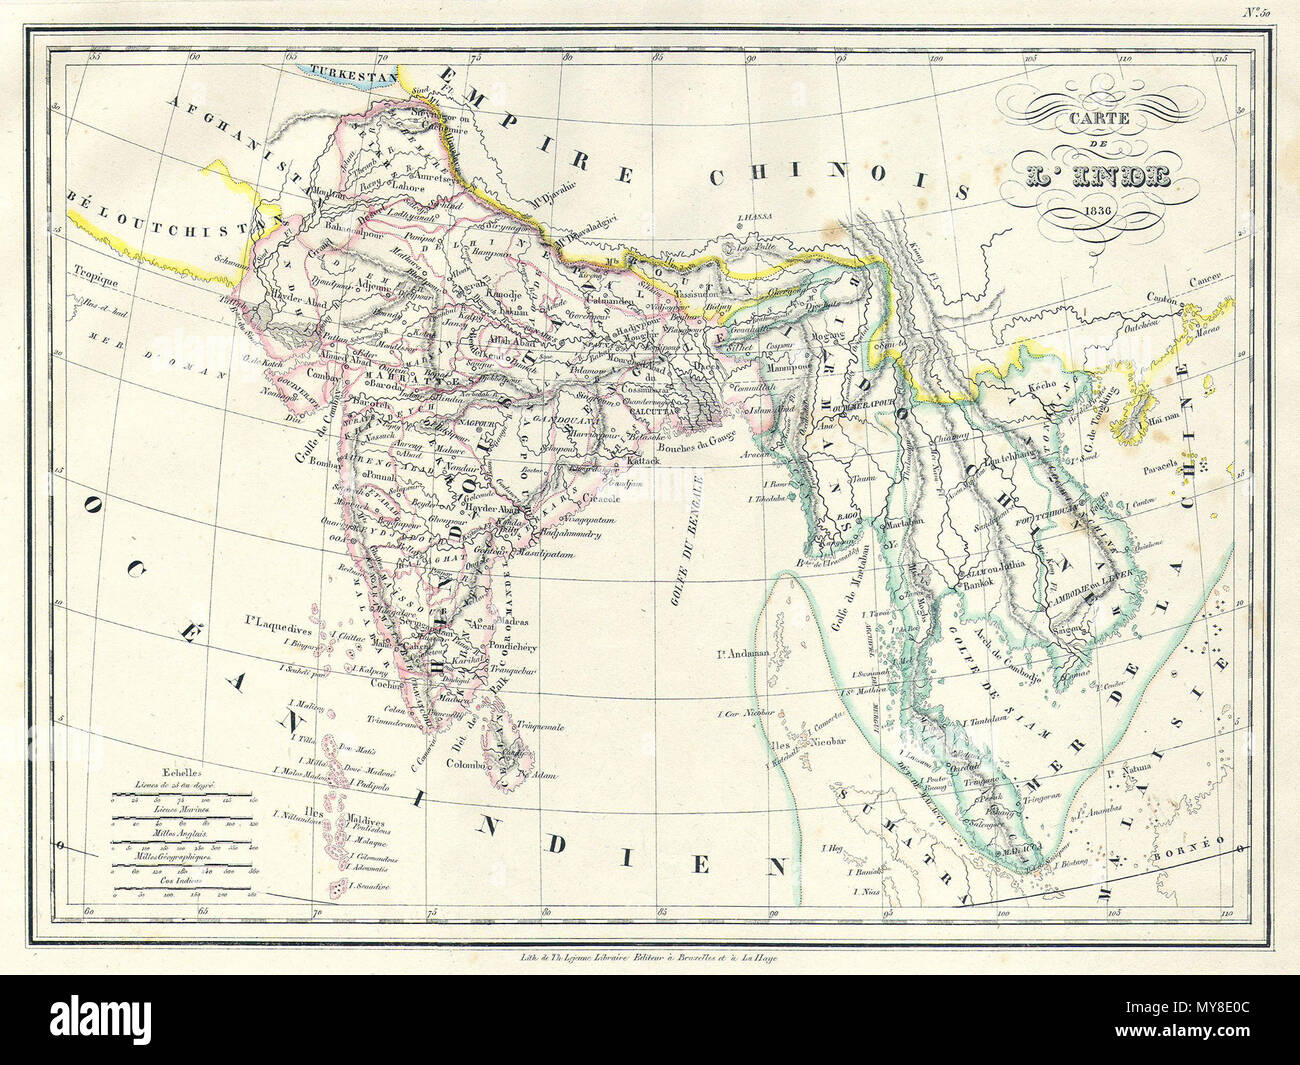 Bangladesh On Map Of Asia.India Bangladesh Map Stock Photos India Bangladesh Map Stock